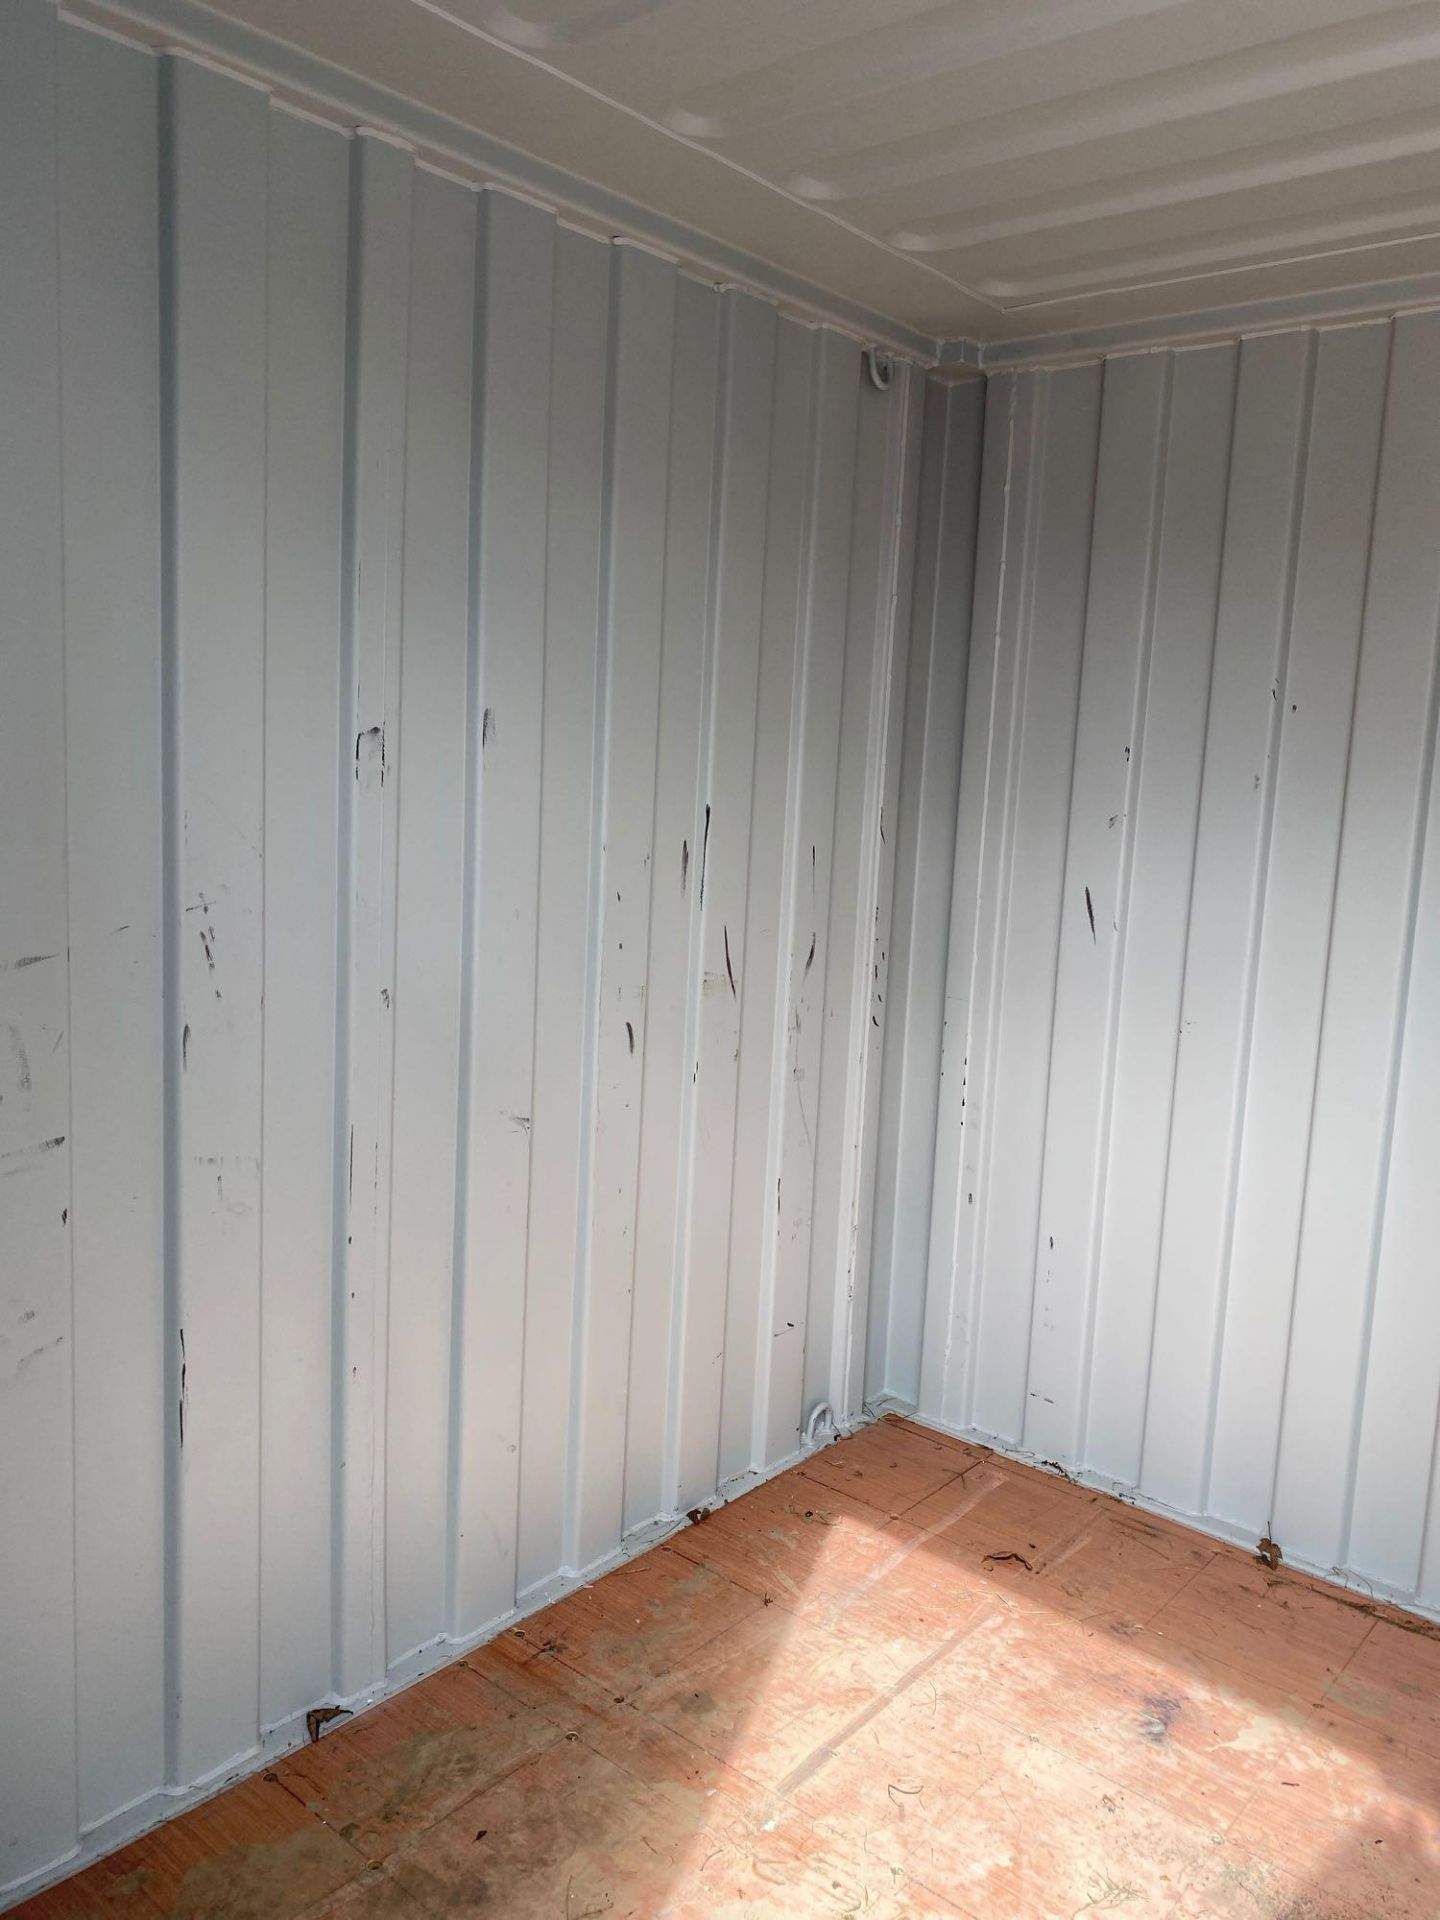 Lot 7 - NEW 7' MOBILE OFFICE/ STORAGE CONTAINER, BARN DOORS, SIDE DOOR, WINDOW, FORK POCKETS